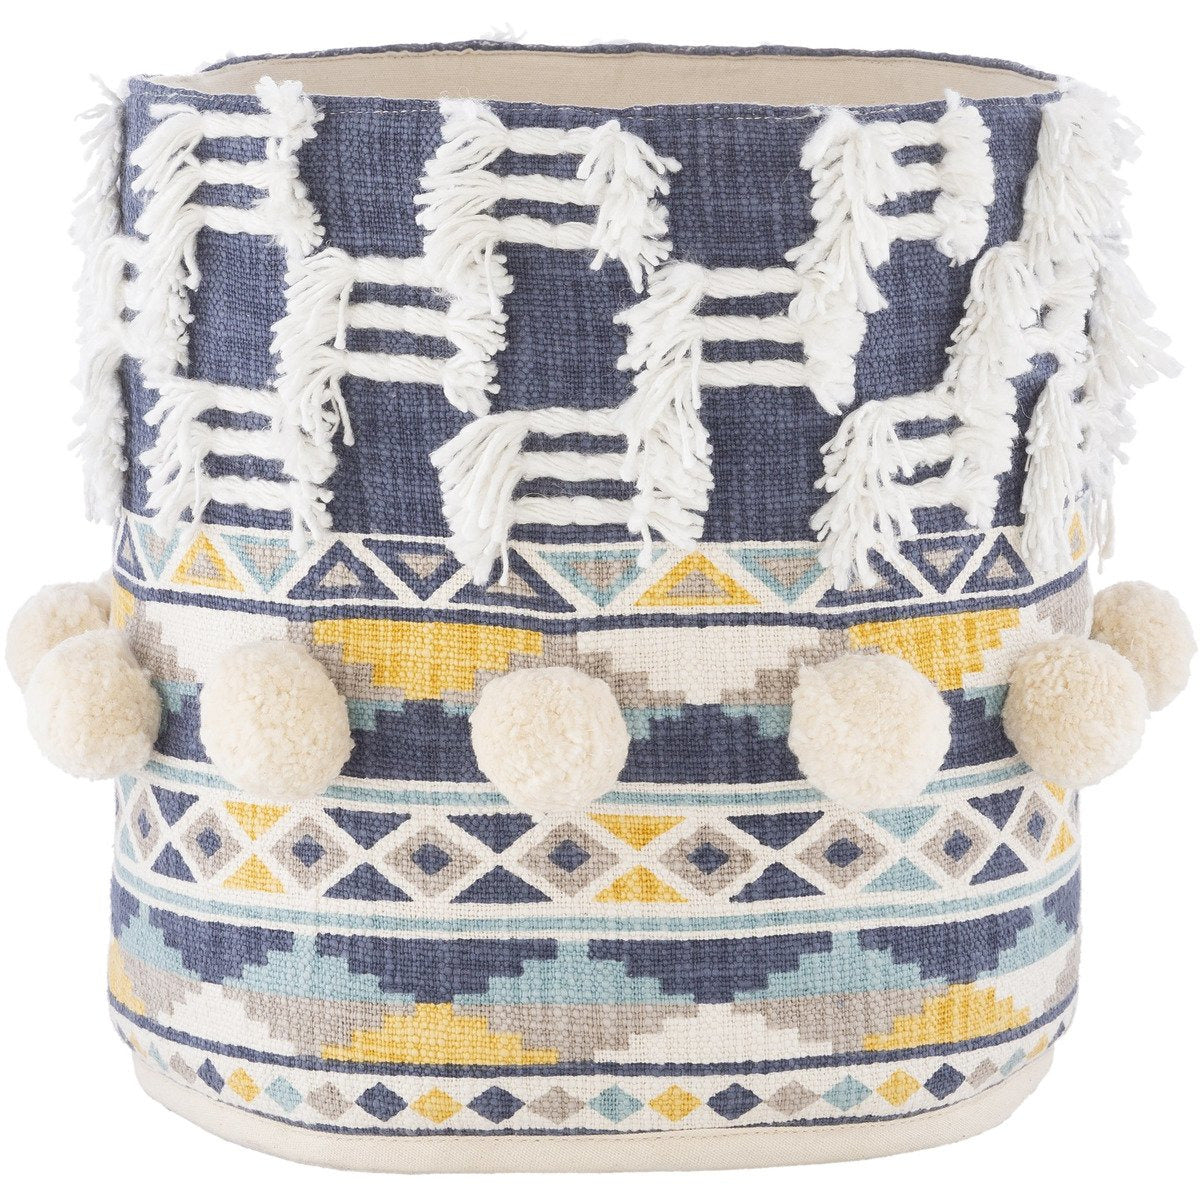 Baskets & Boxes - Mansa MAS-001 Basket